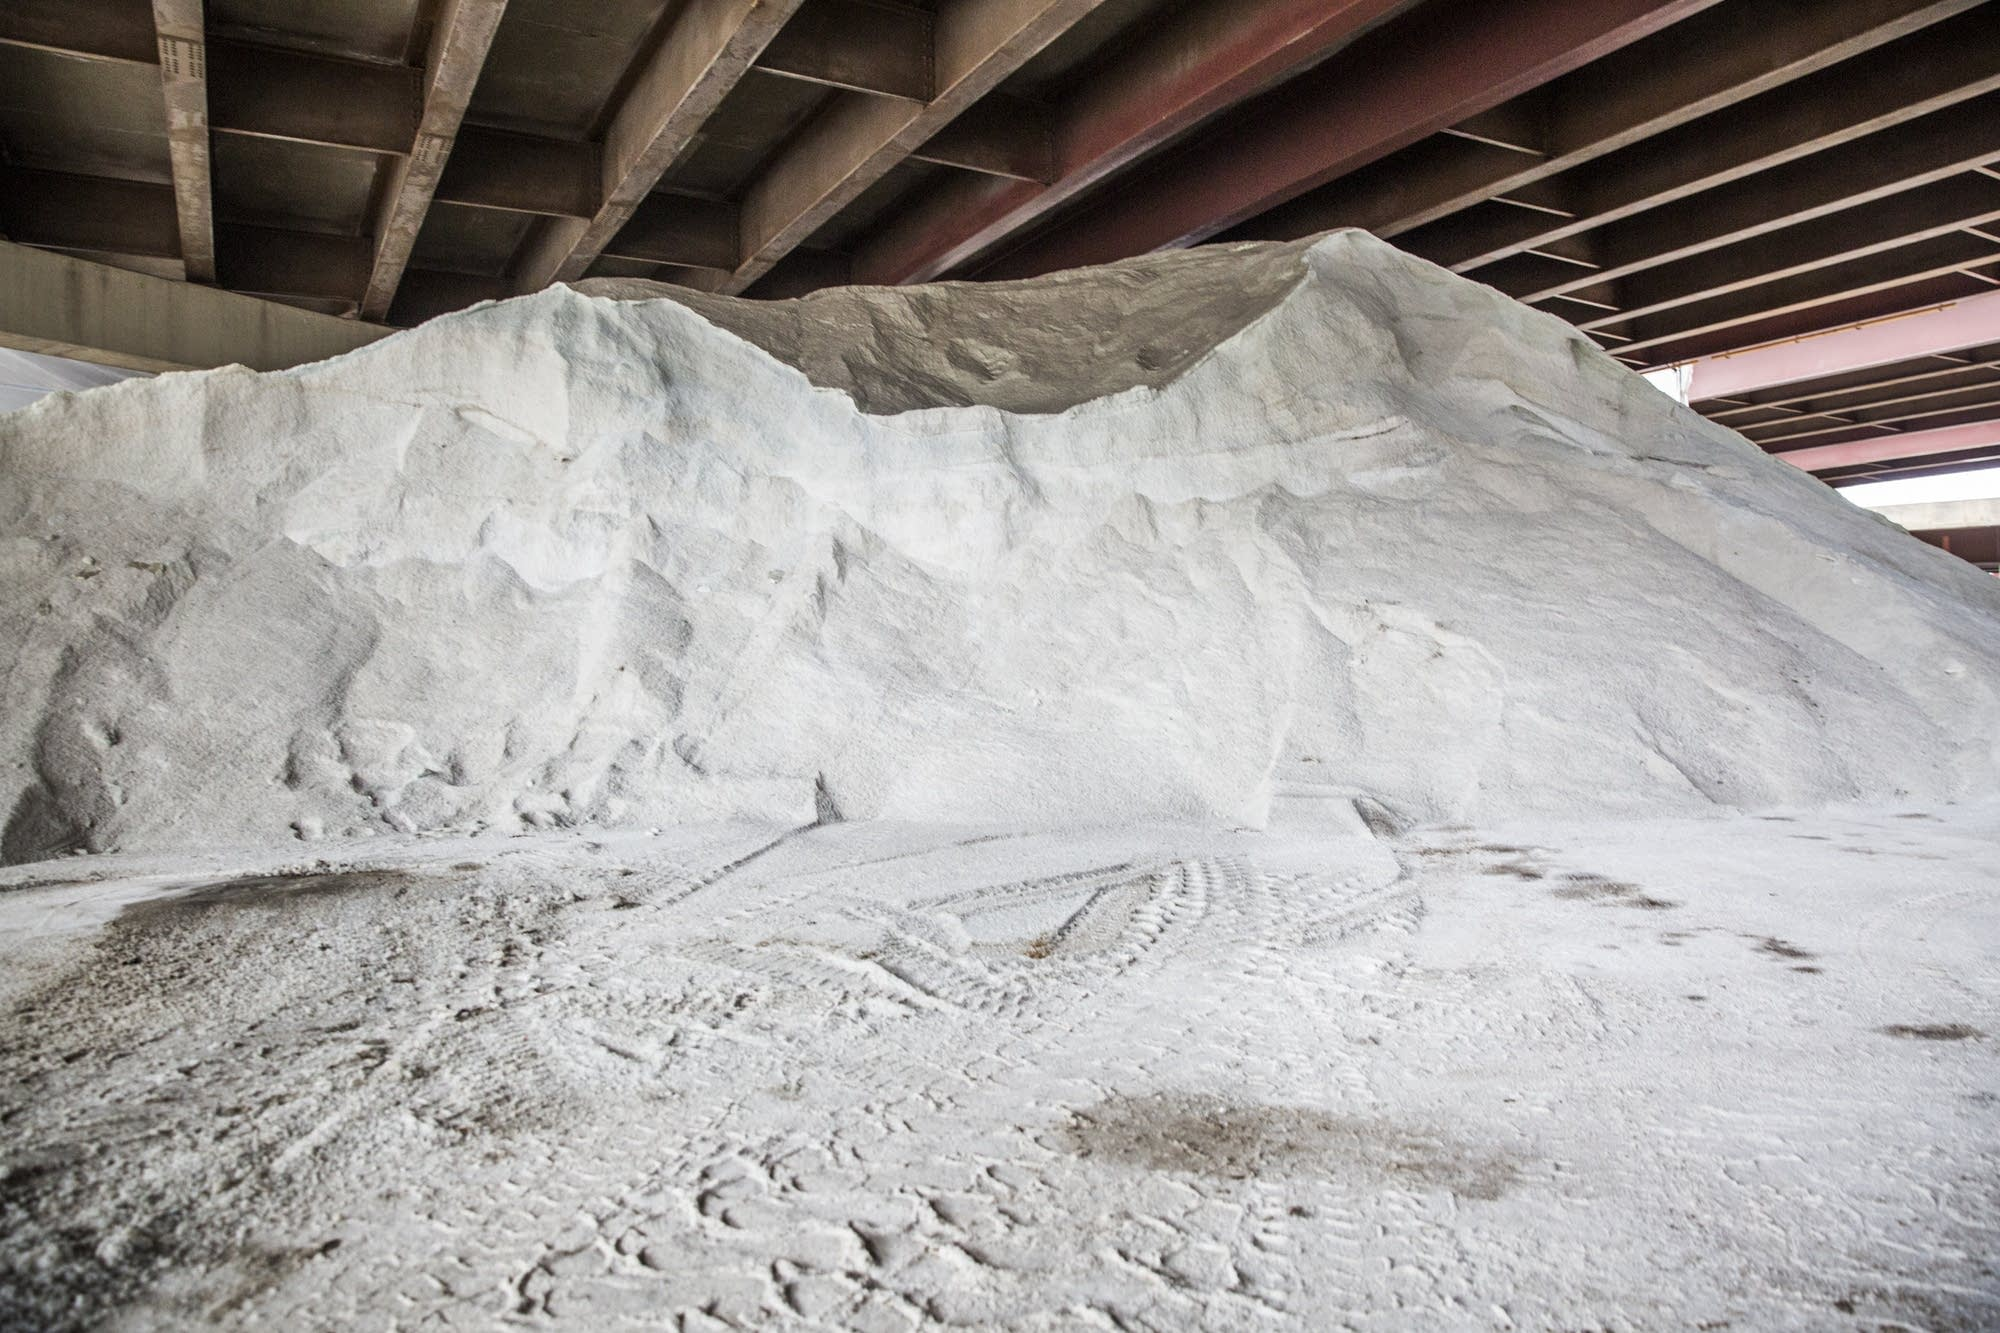 A pile of road salt sits underneath an overpass.